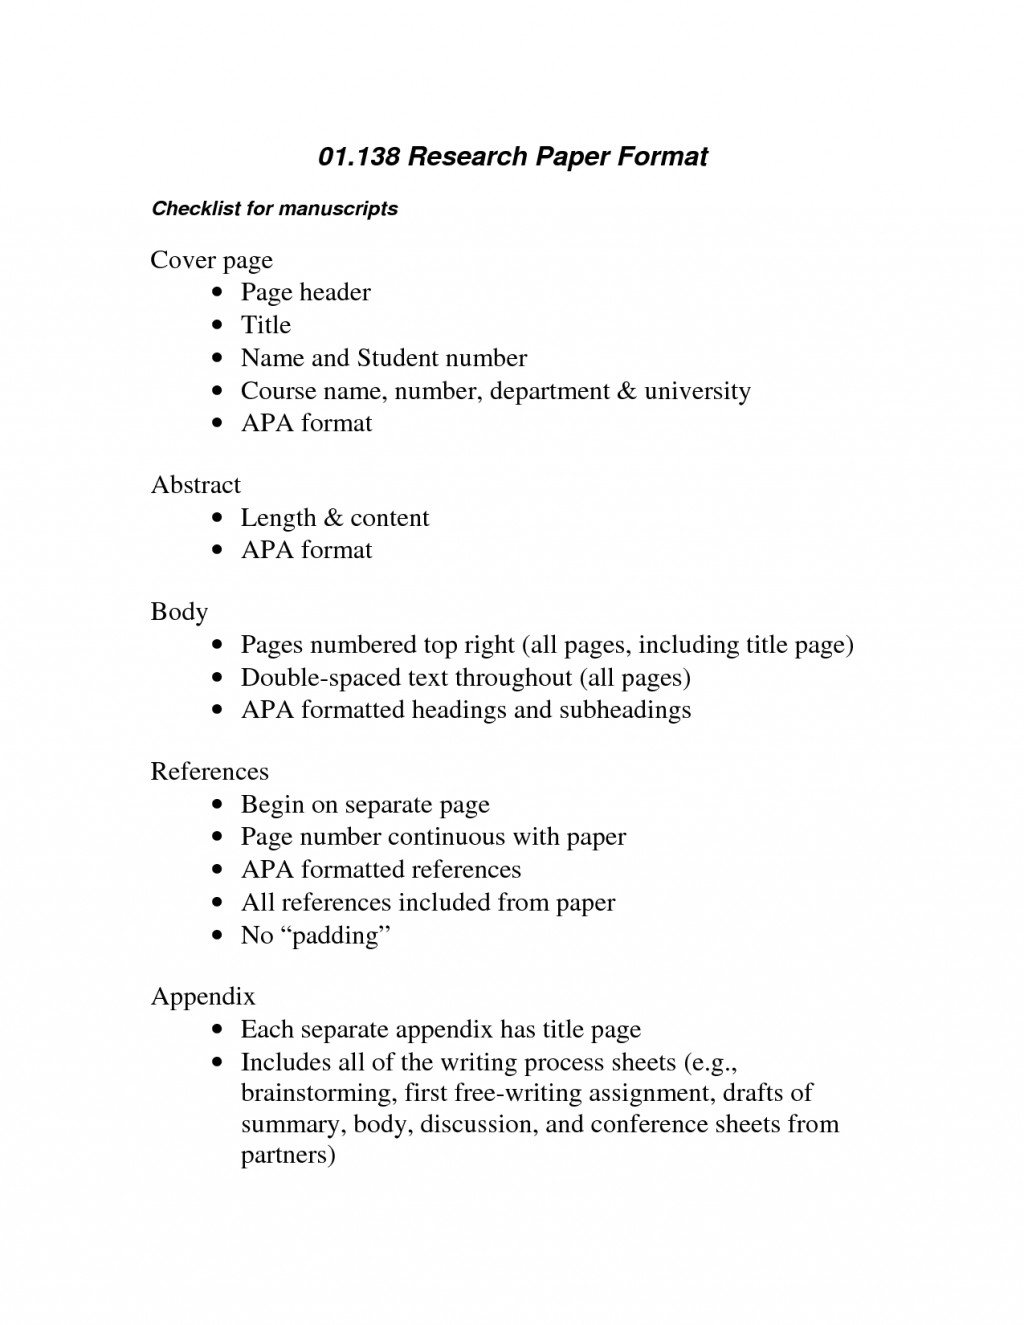 008 Research Paper Liberty University Frightening Outline Large